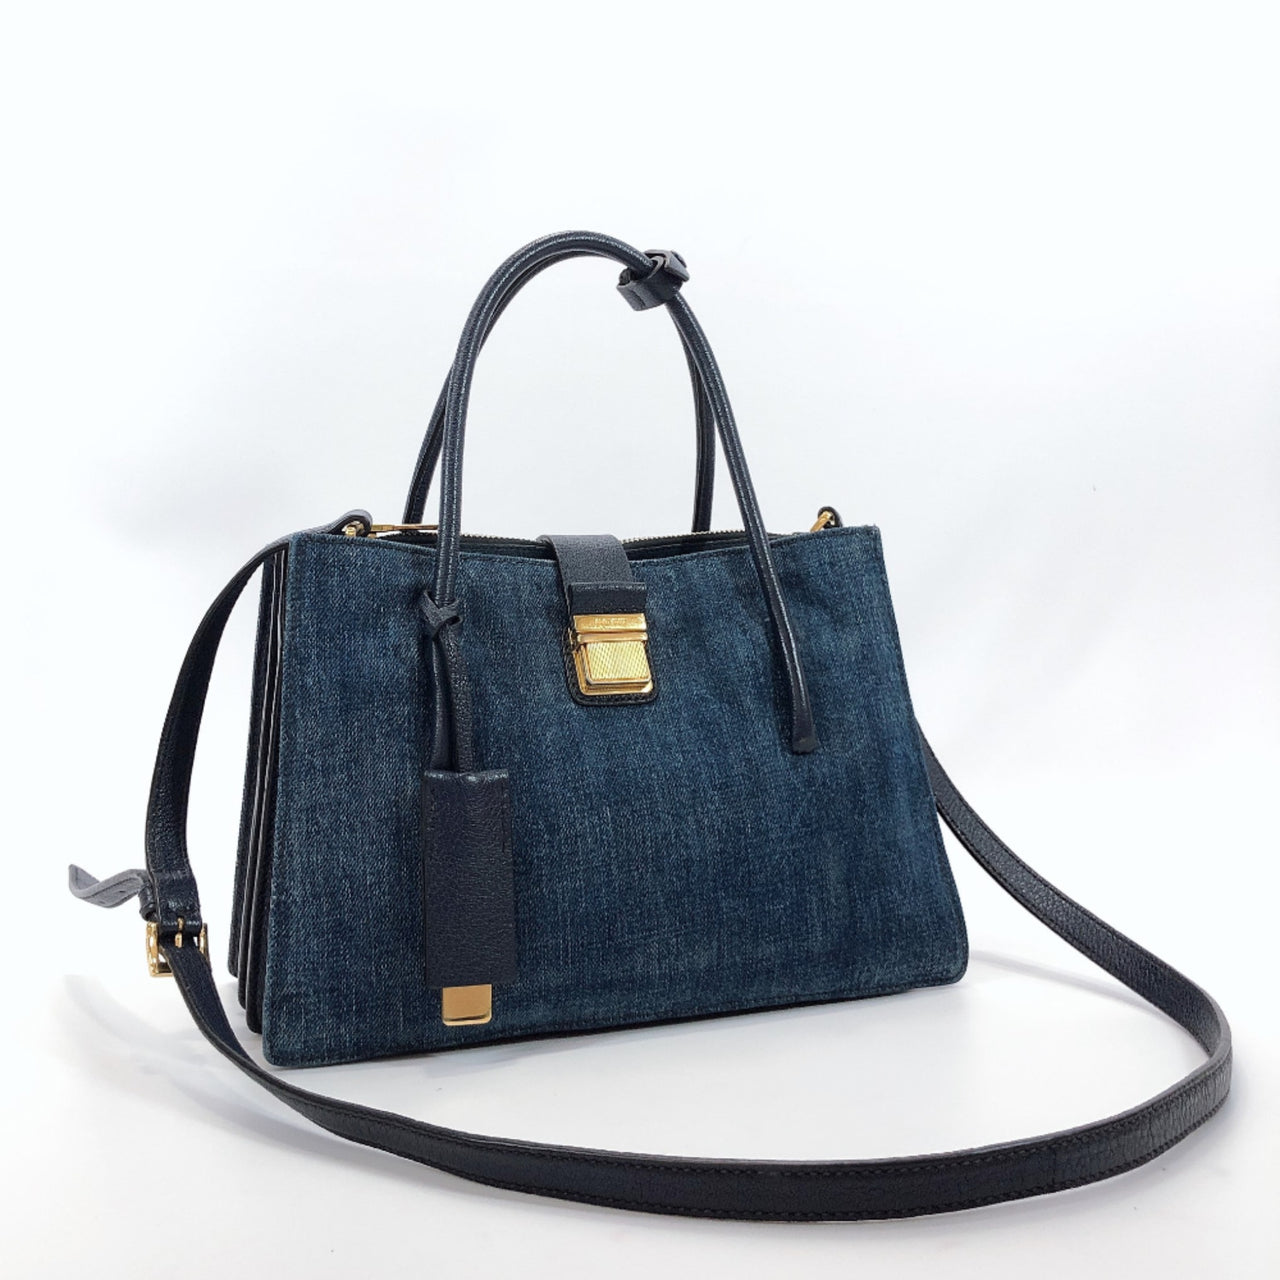 Miu Miu Handbag Madras 2way denim Navy Women Used